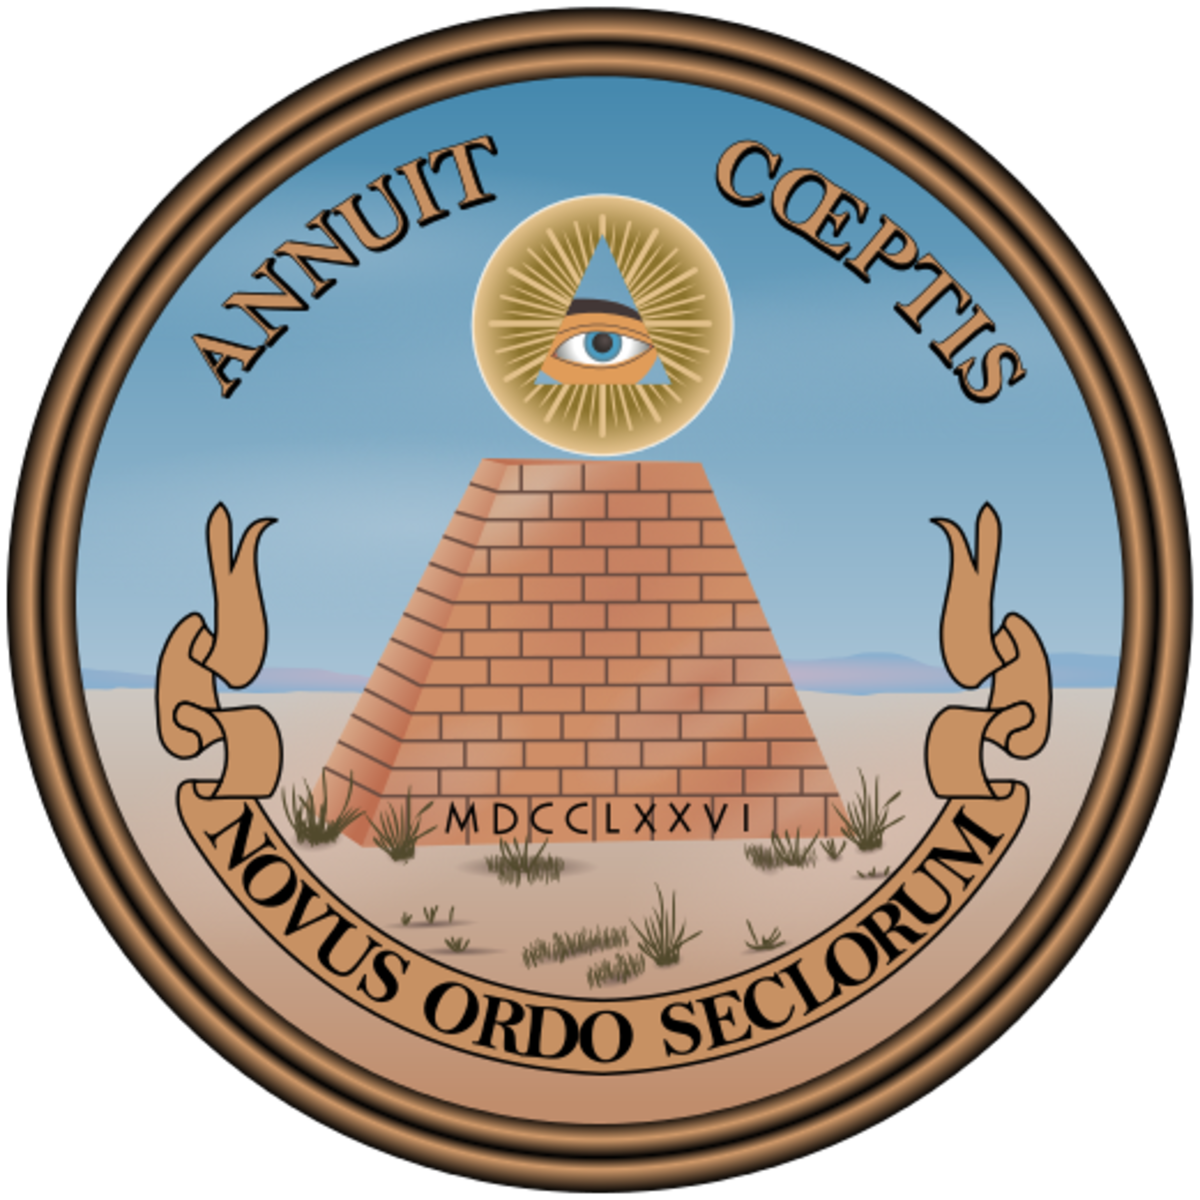 To most people this is the reverse side of the Great Seal of the United States. To conspiracy theorists it's filled with symbolism that the Illuminati are in control.